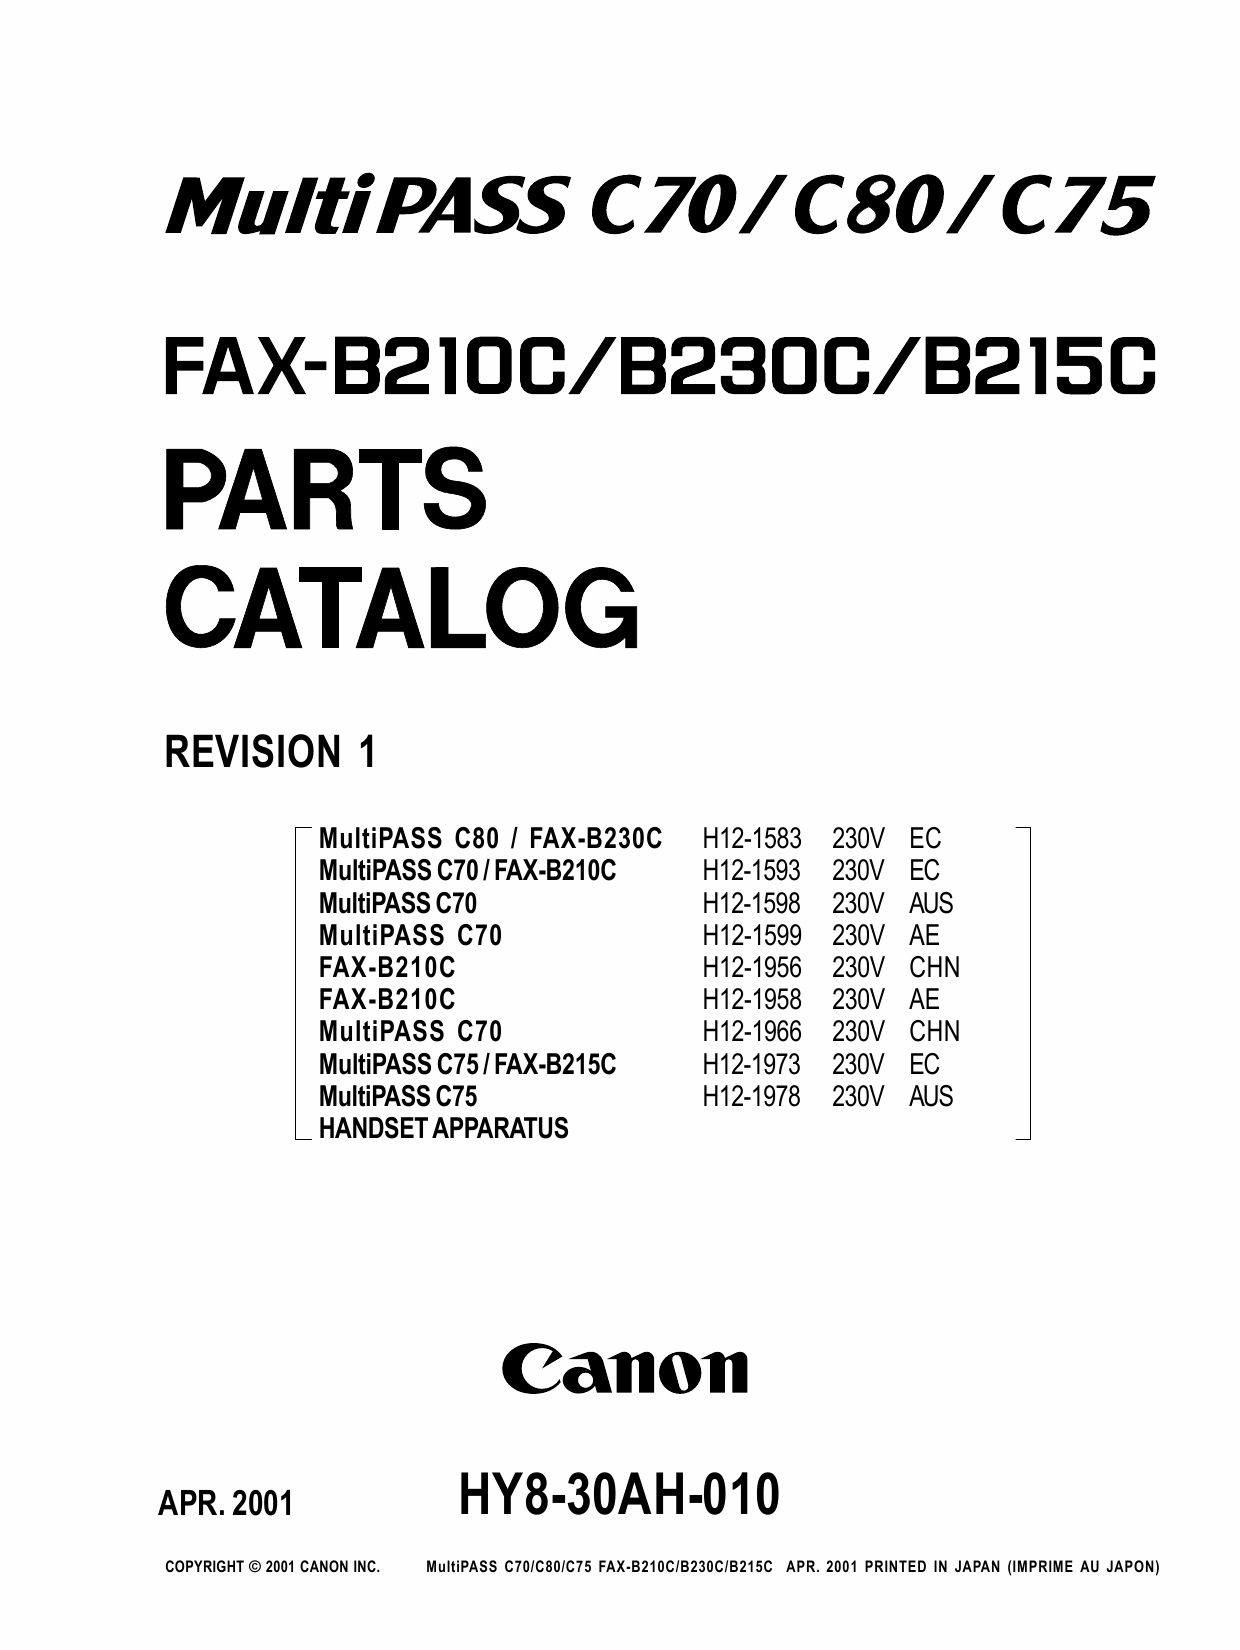 Canon FAX B210C B230C B215C Parts Catalog Manual-1